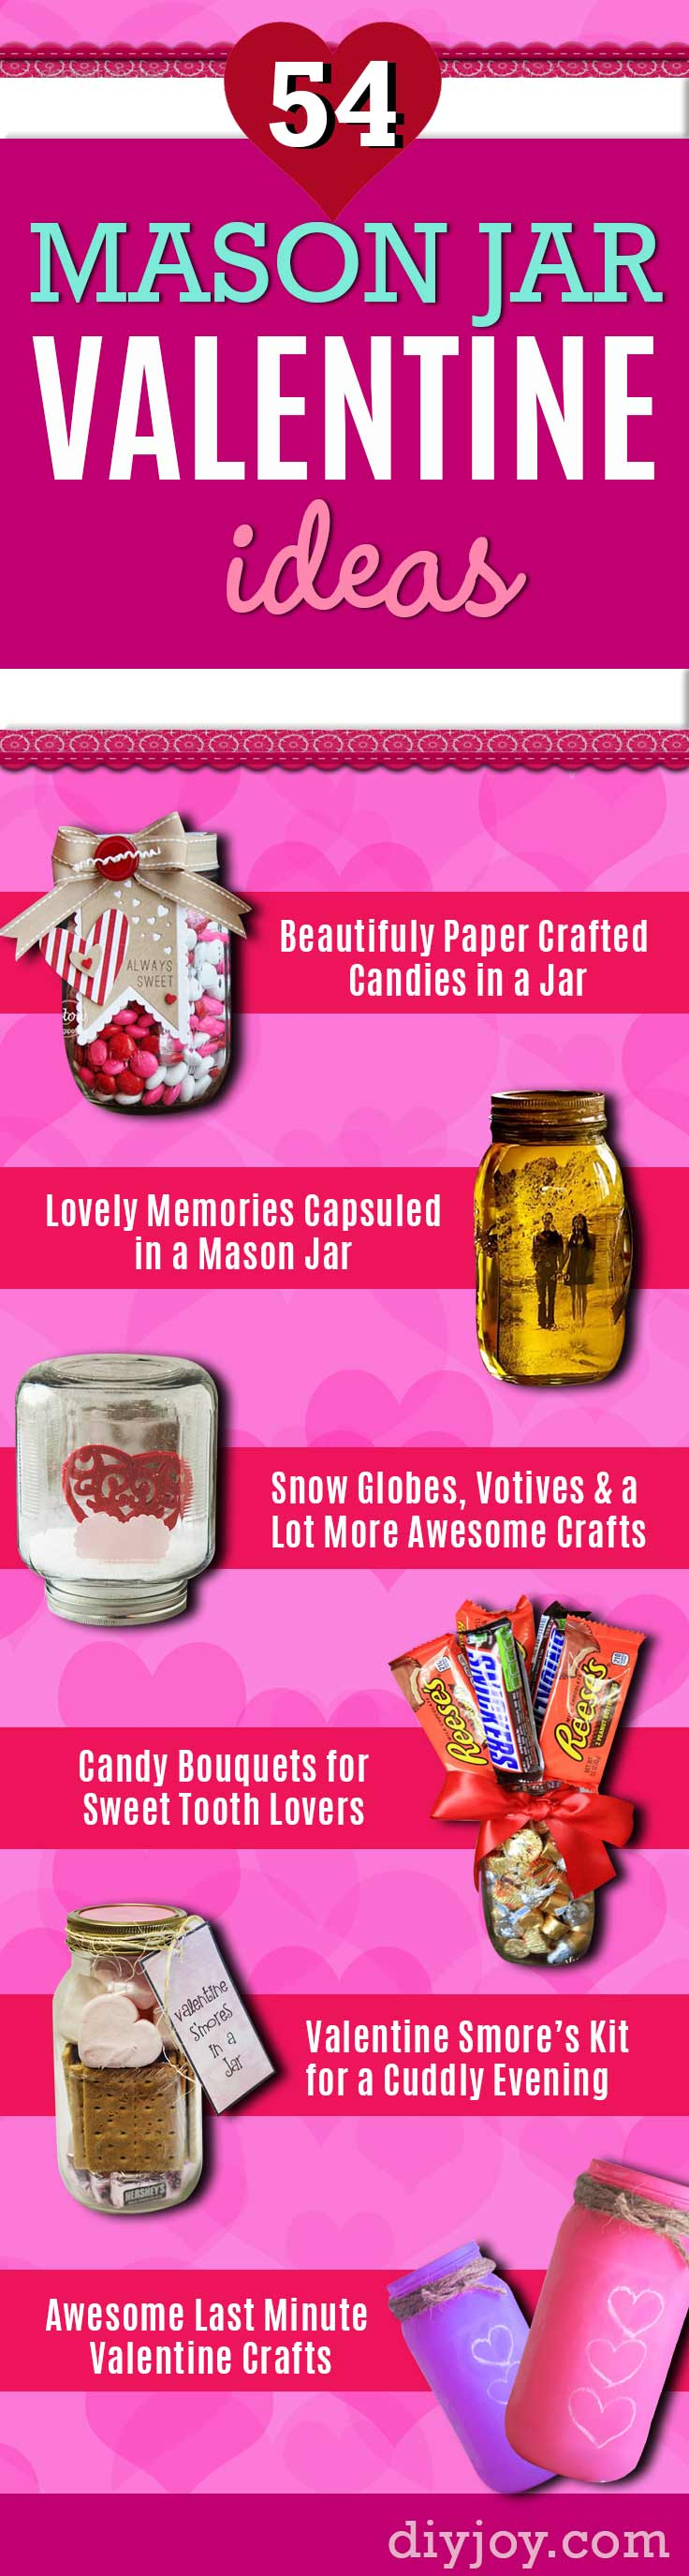 55 Mason Jar Valentine Gifts And Crafts